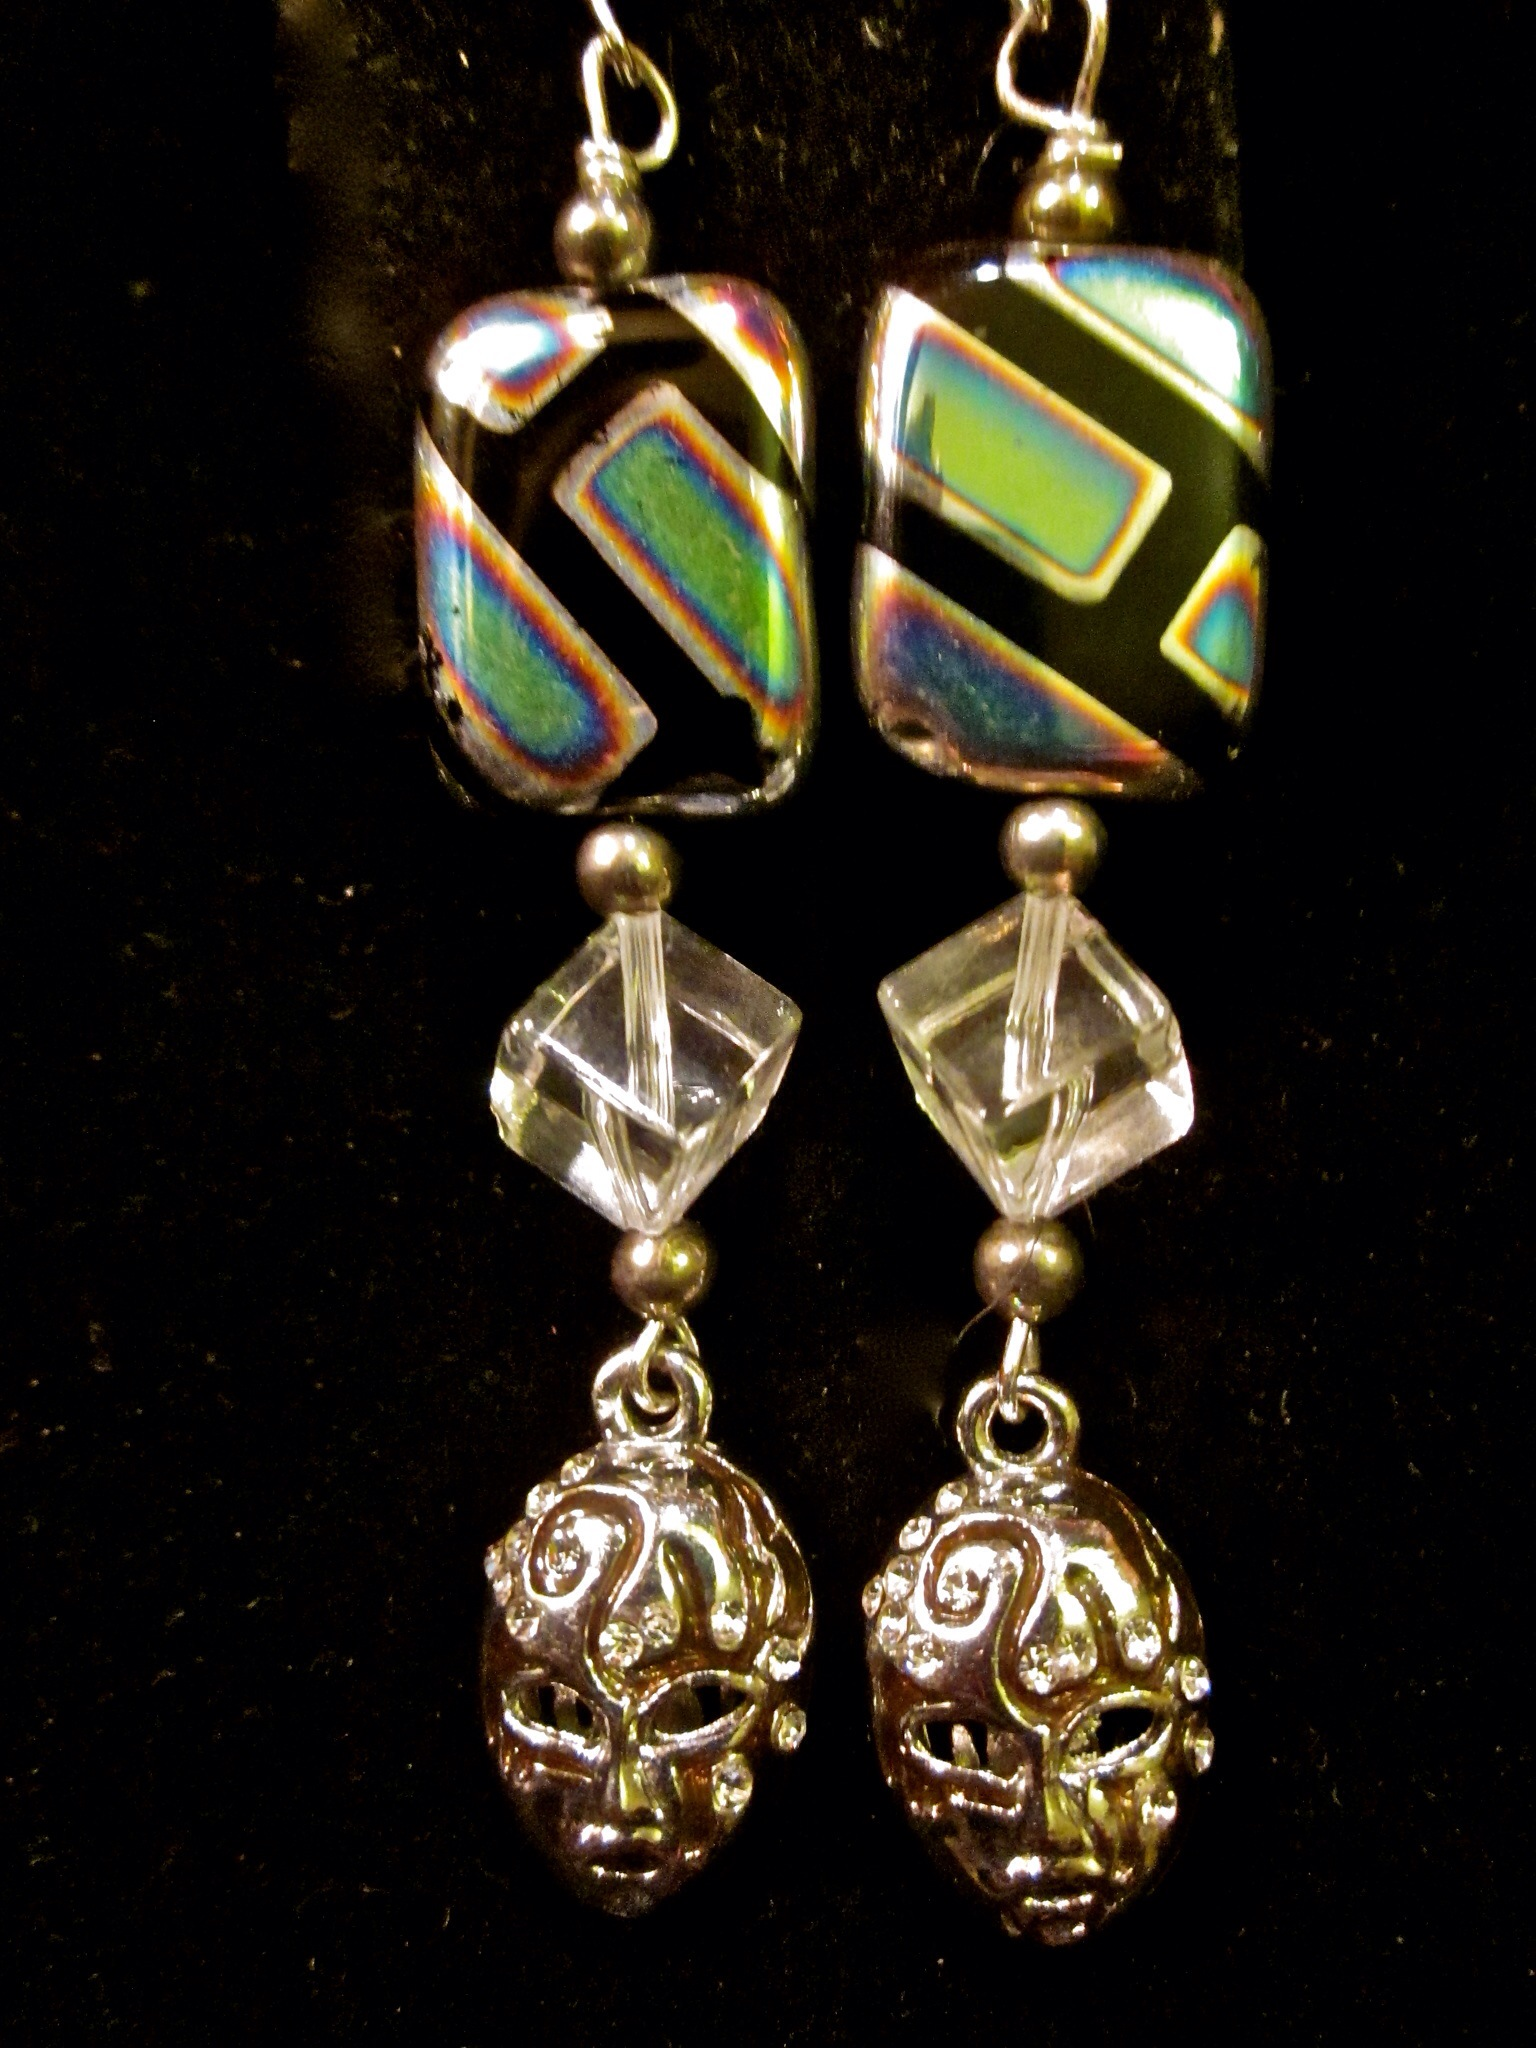 Mask earrings from Venice